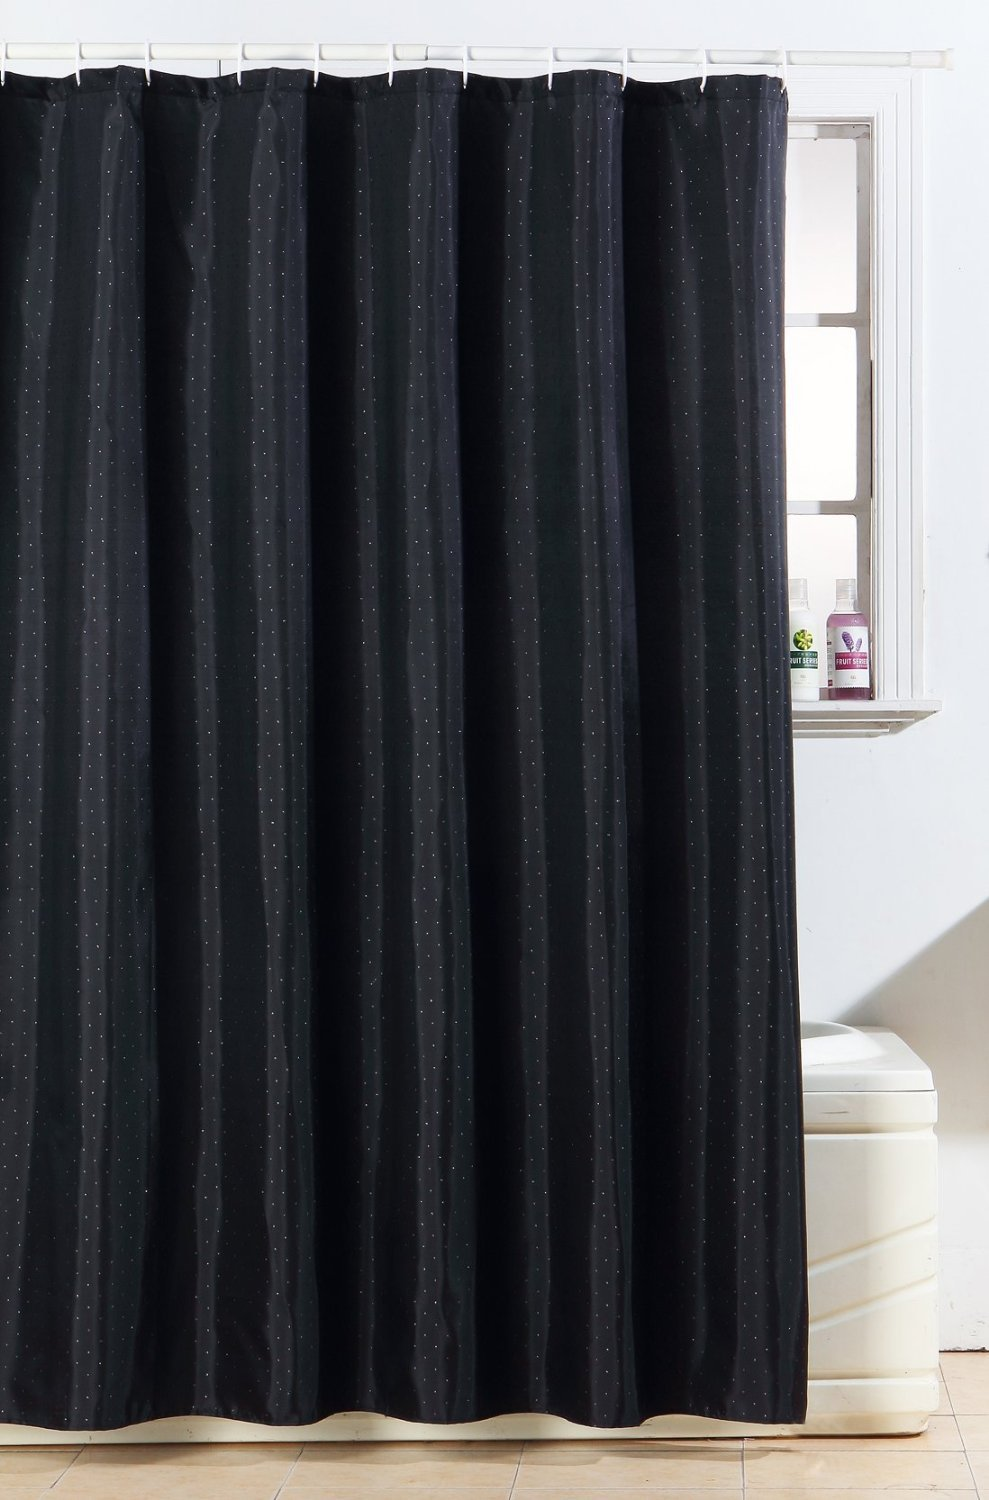 Sinatra silver shower curtain - New Glitter Diamante Polyester Shower Curtain Bath With Free Hooks Black